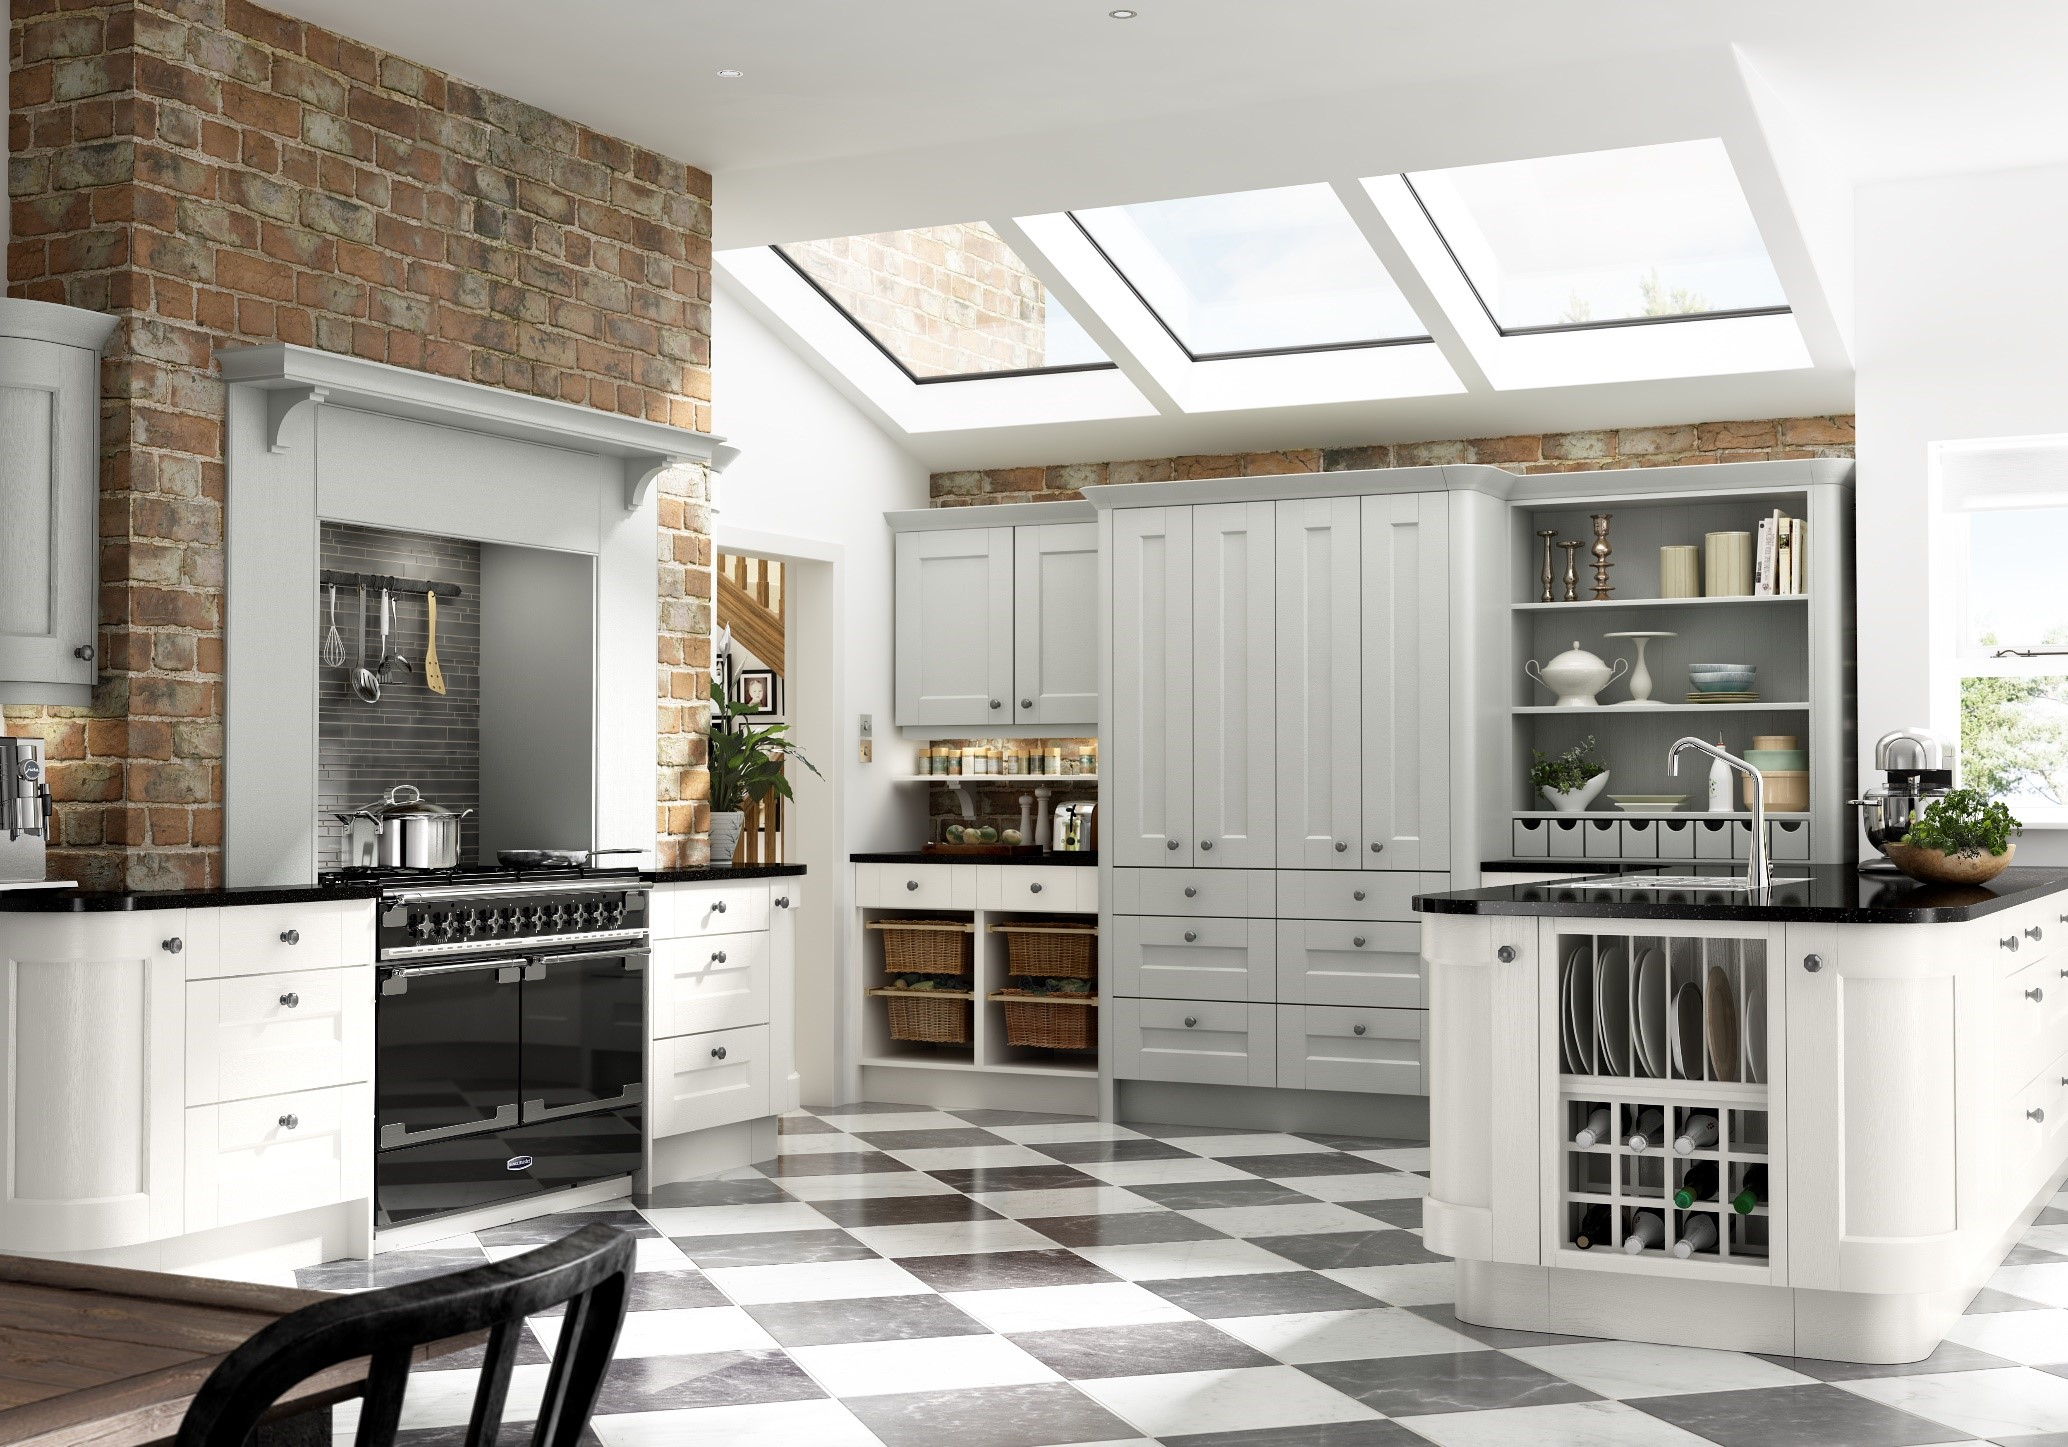 Design Lines Cromer, Quality Bathroom & Kitchen Suppliers in Norfolk ...